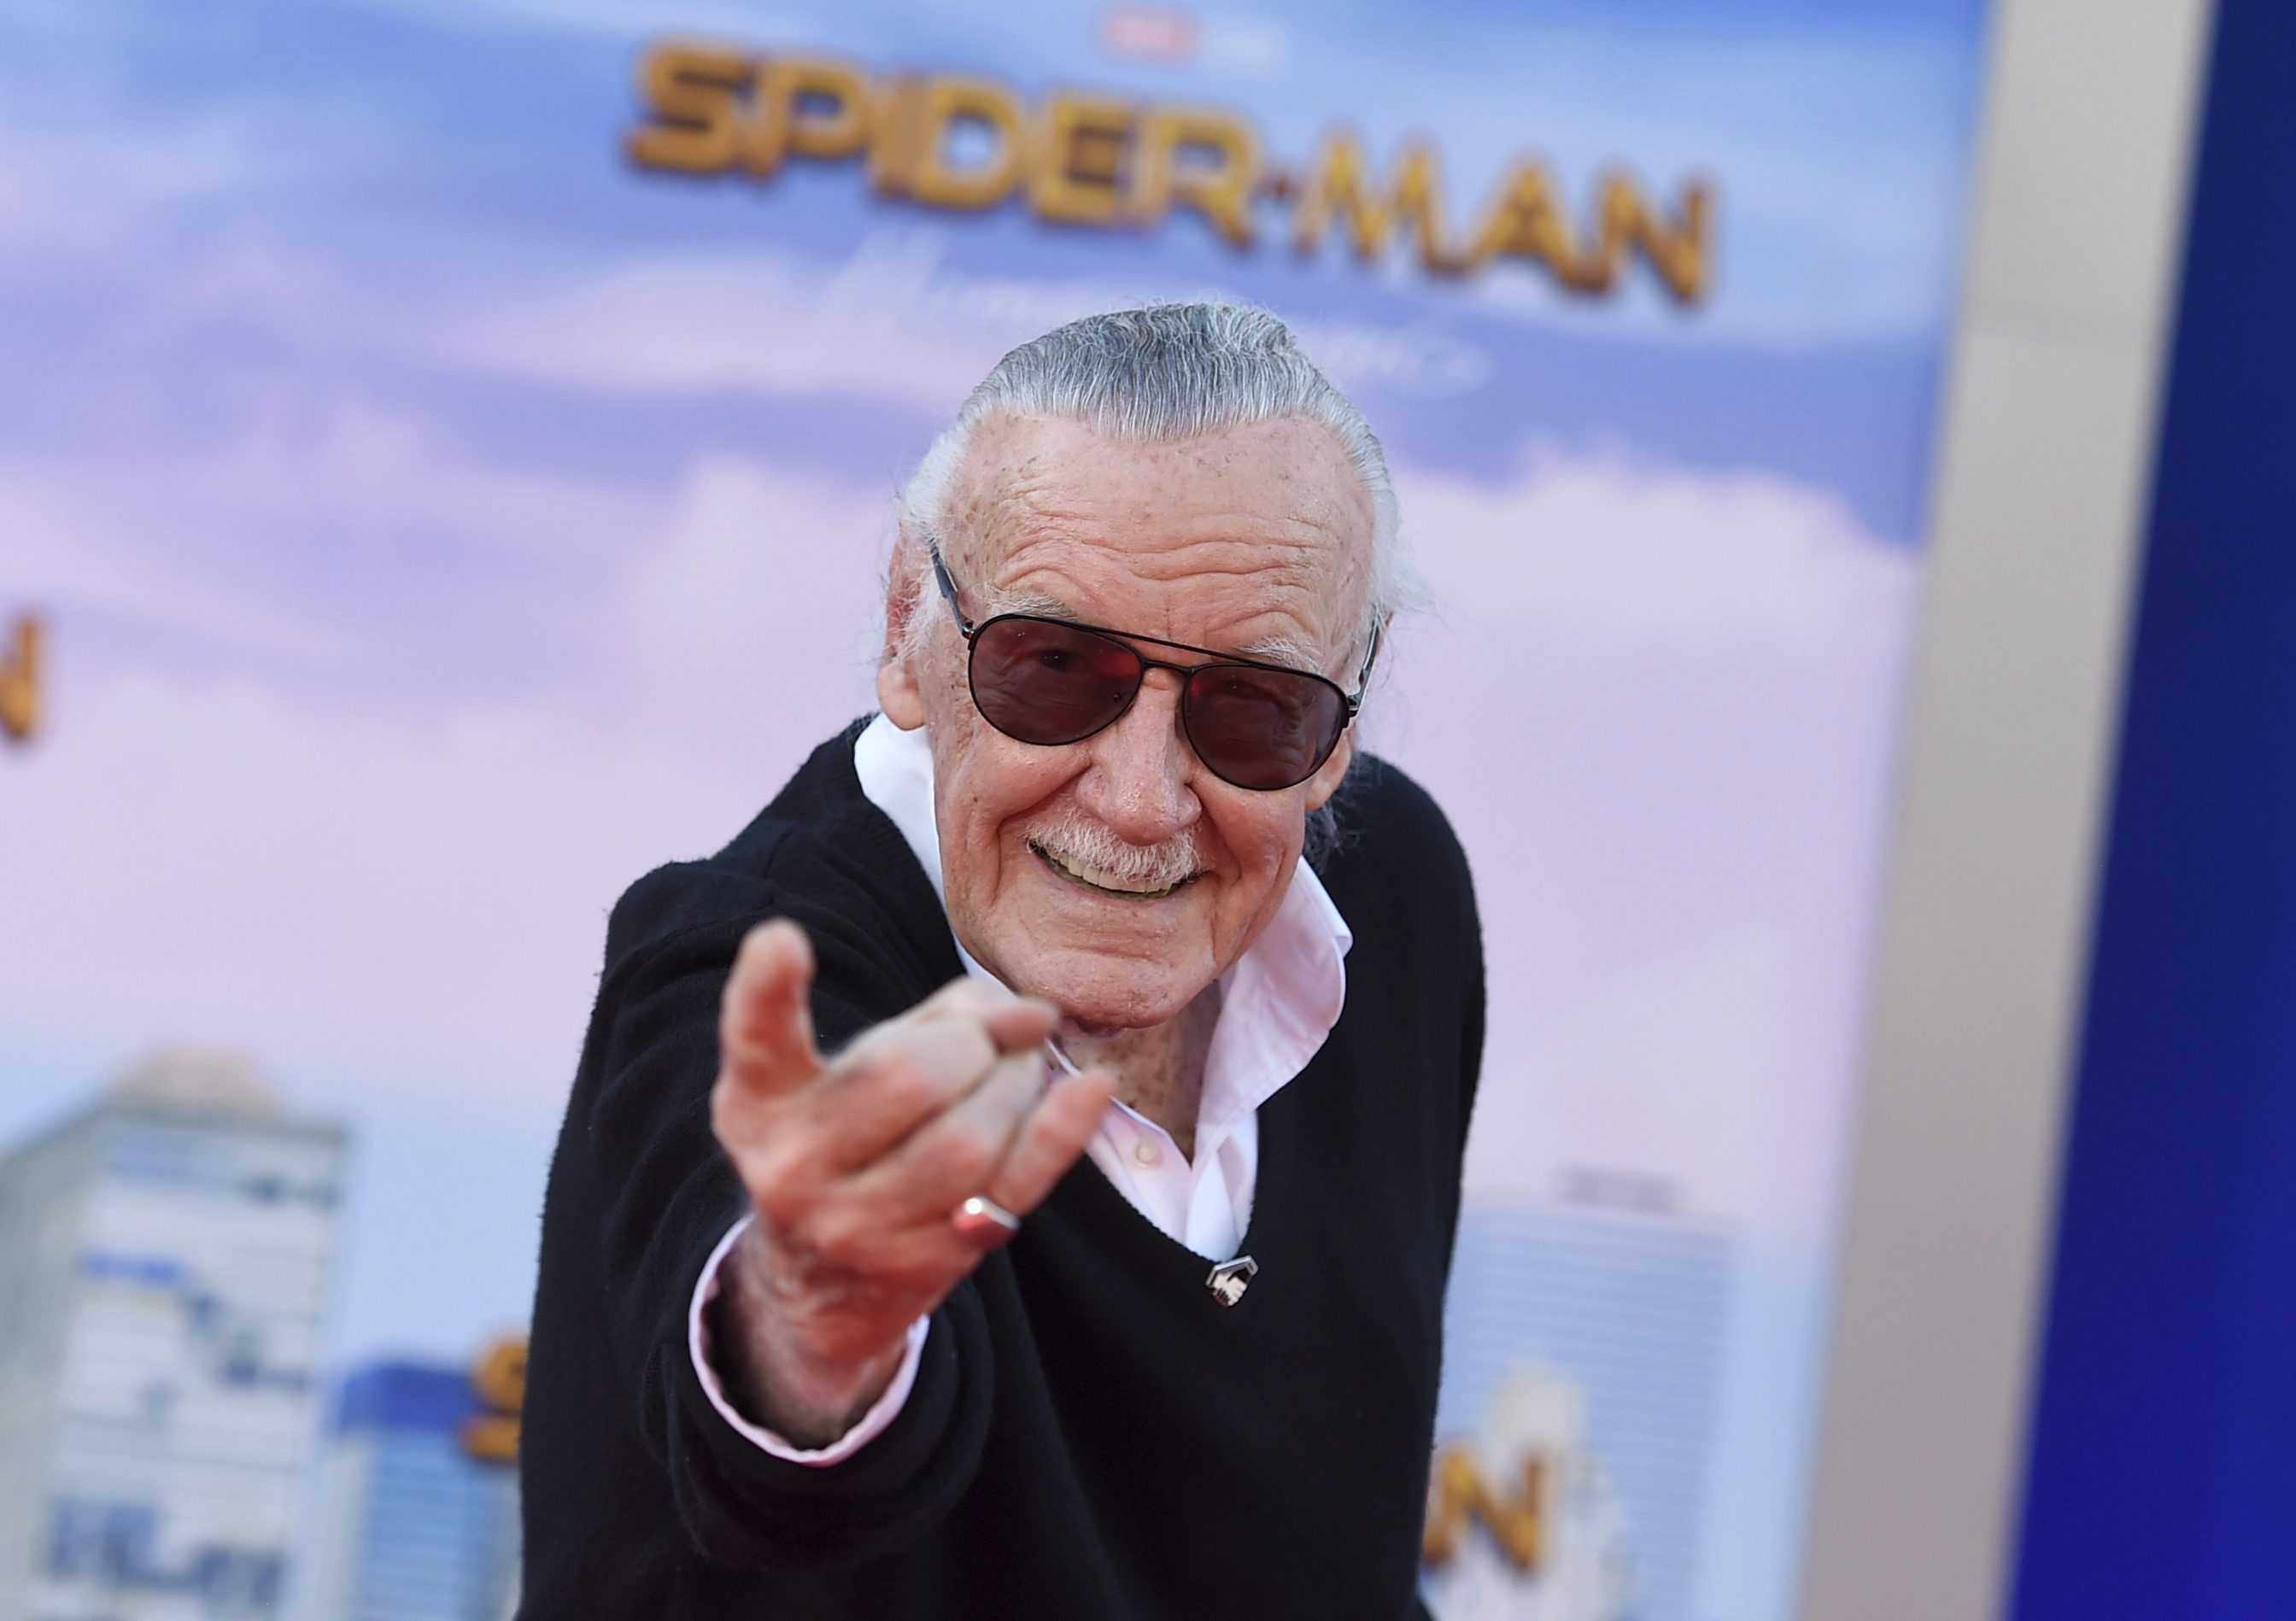 Stan Lee, legendary Marvel superheroes creator, dead at 95